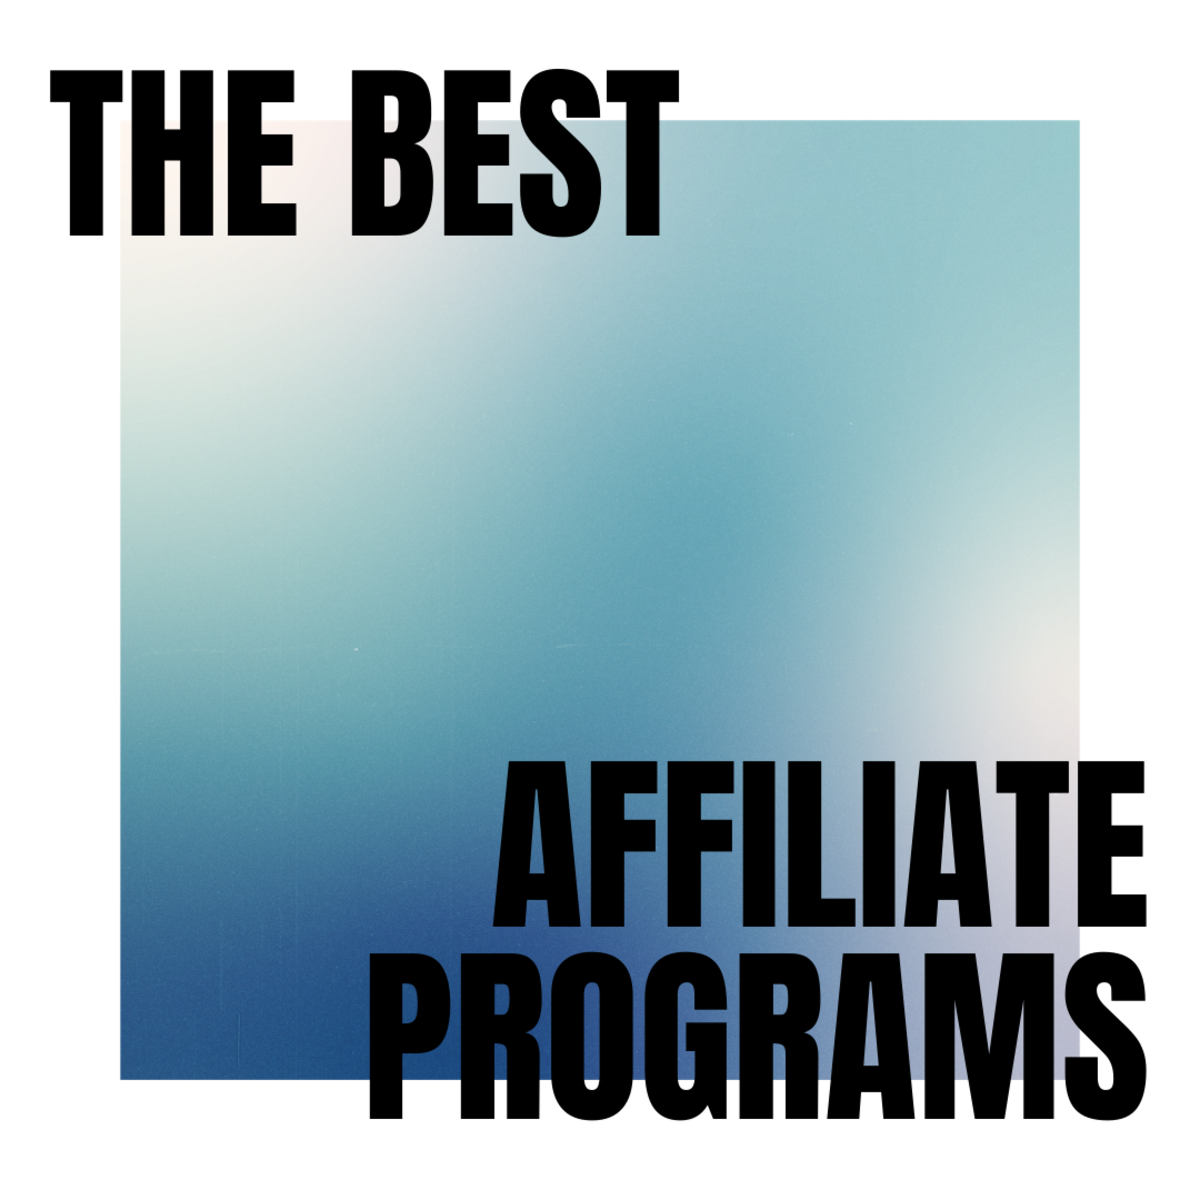 The Top 8 Affiliate Programs for Earning Money